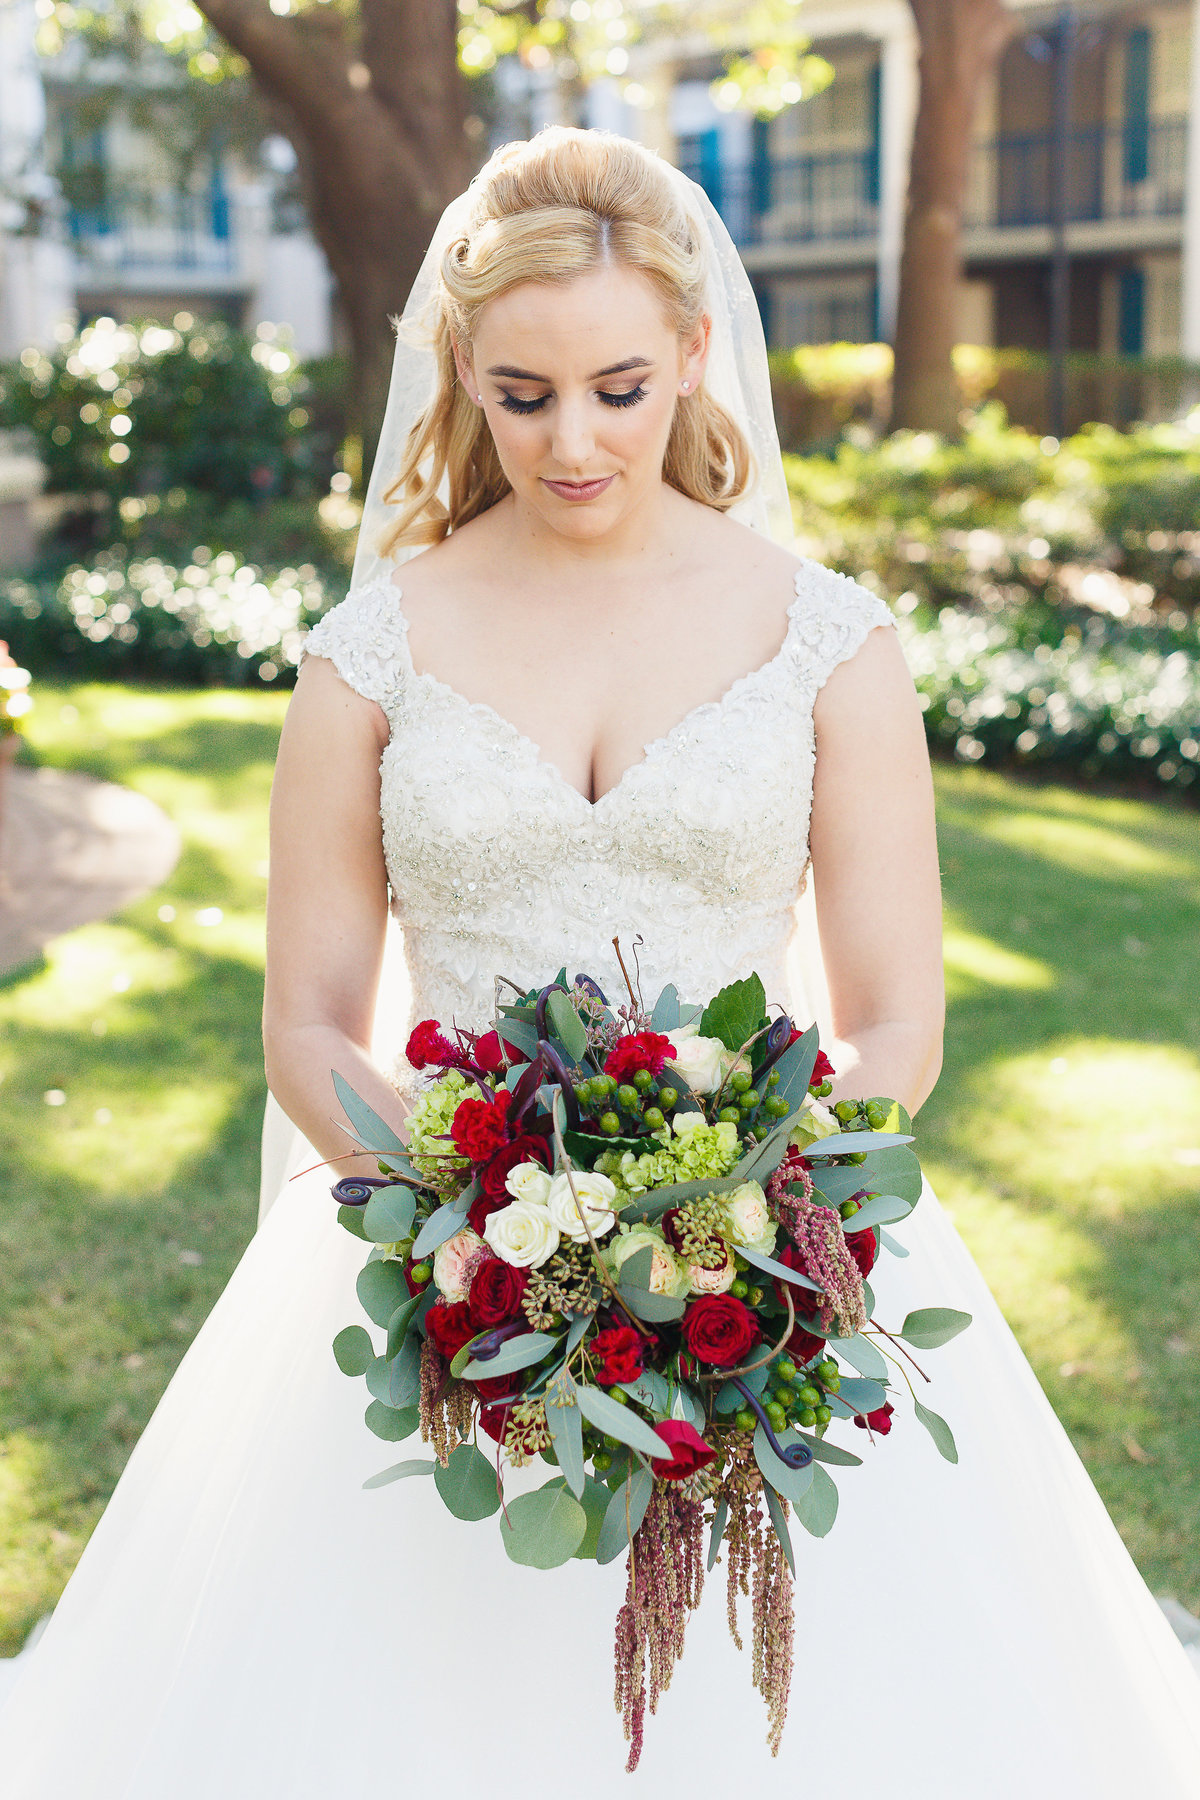 Bride Gazes at Her Bouquet During Her Port Orleans Disney Wedding Photo Shoot